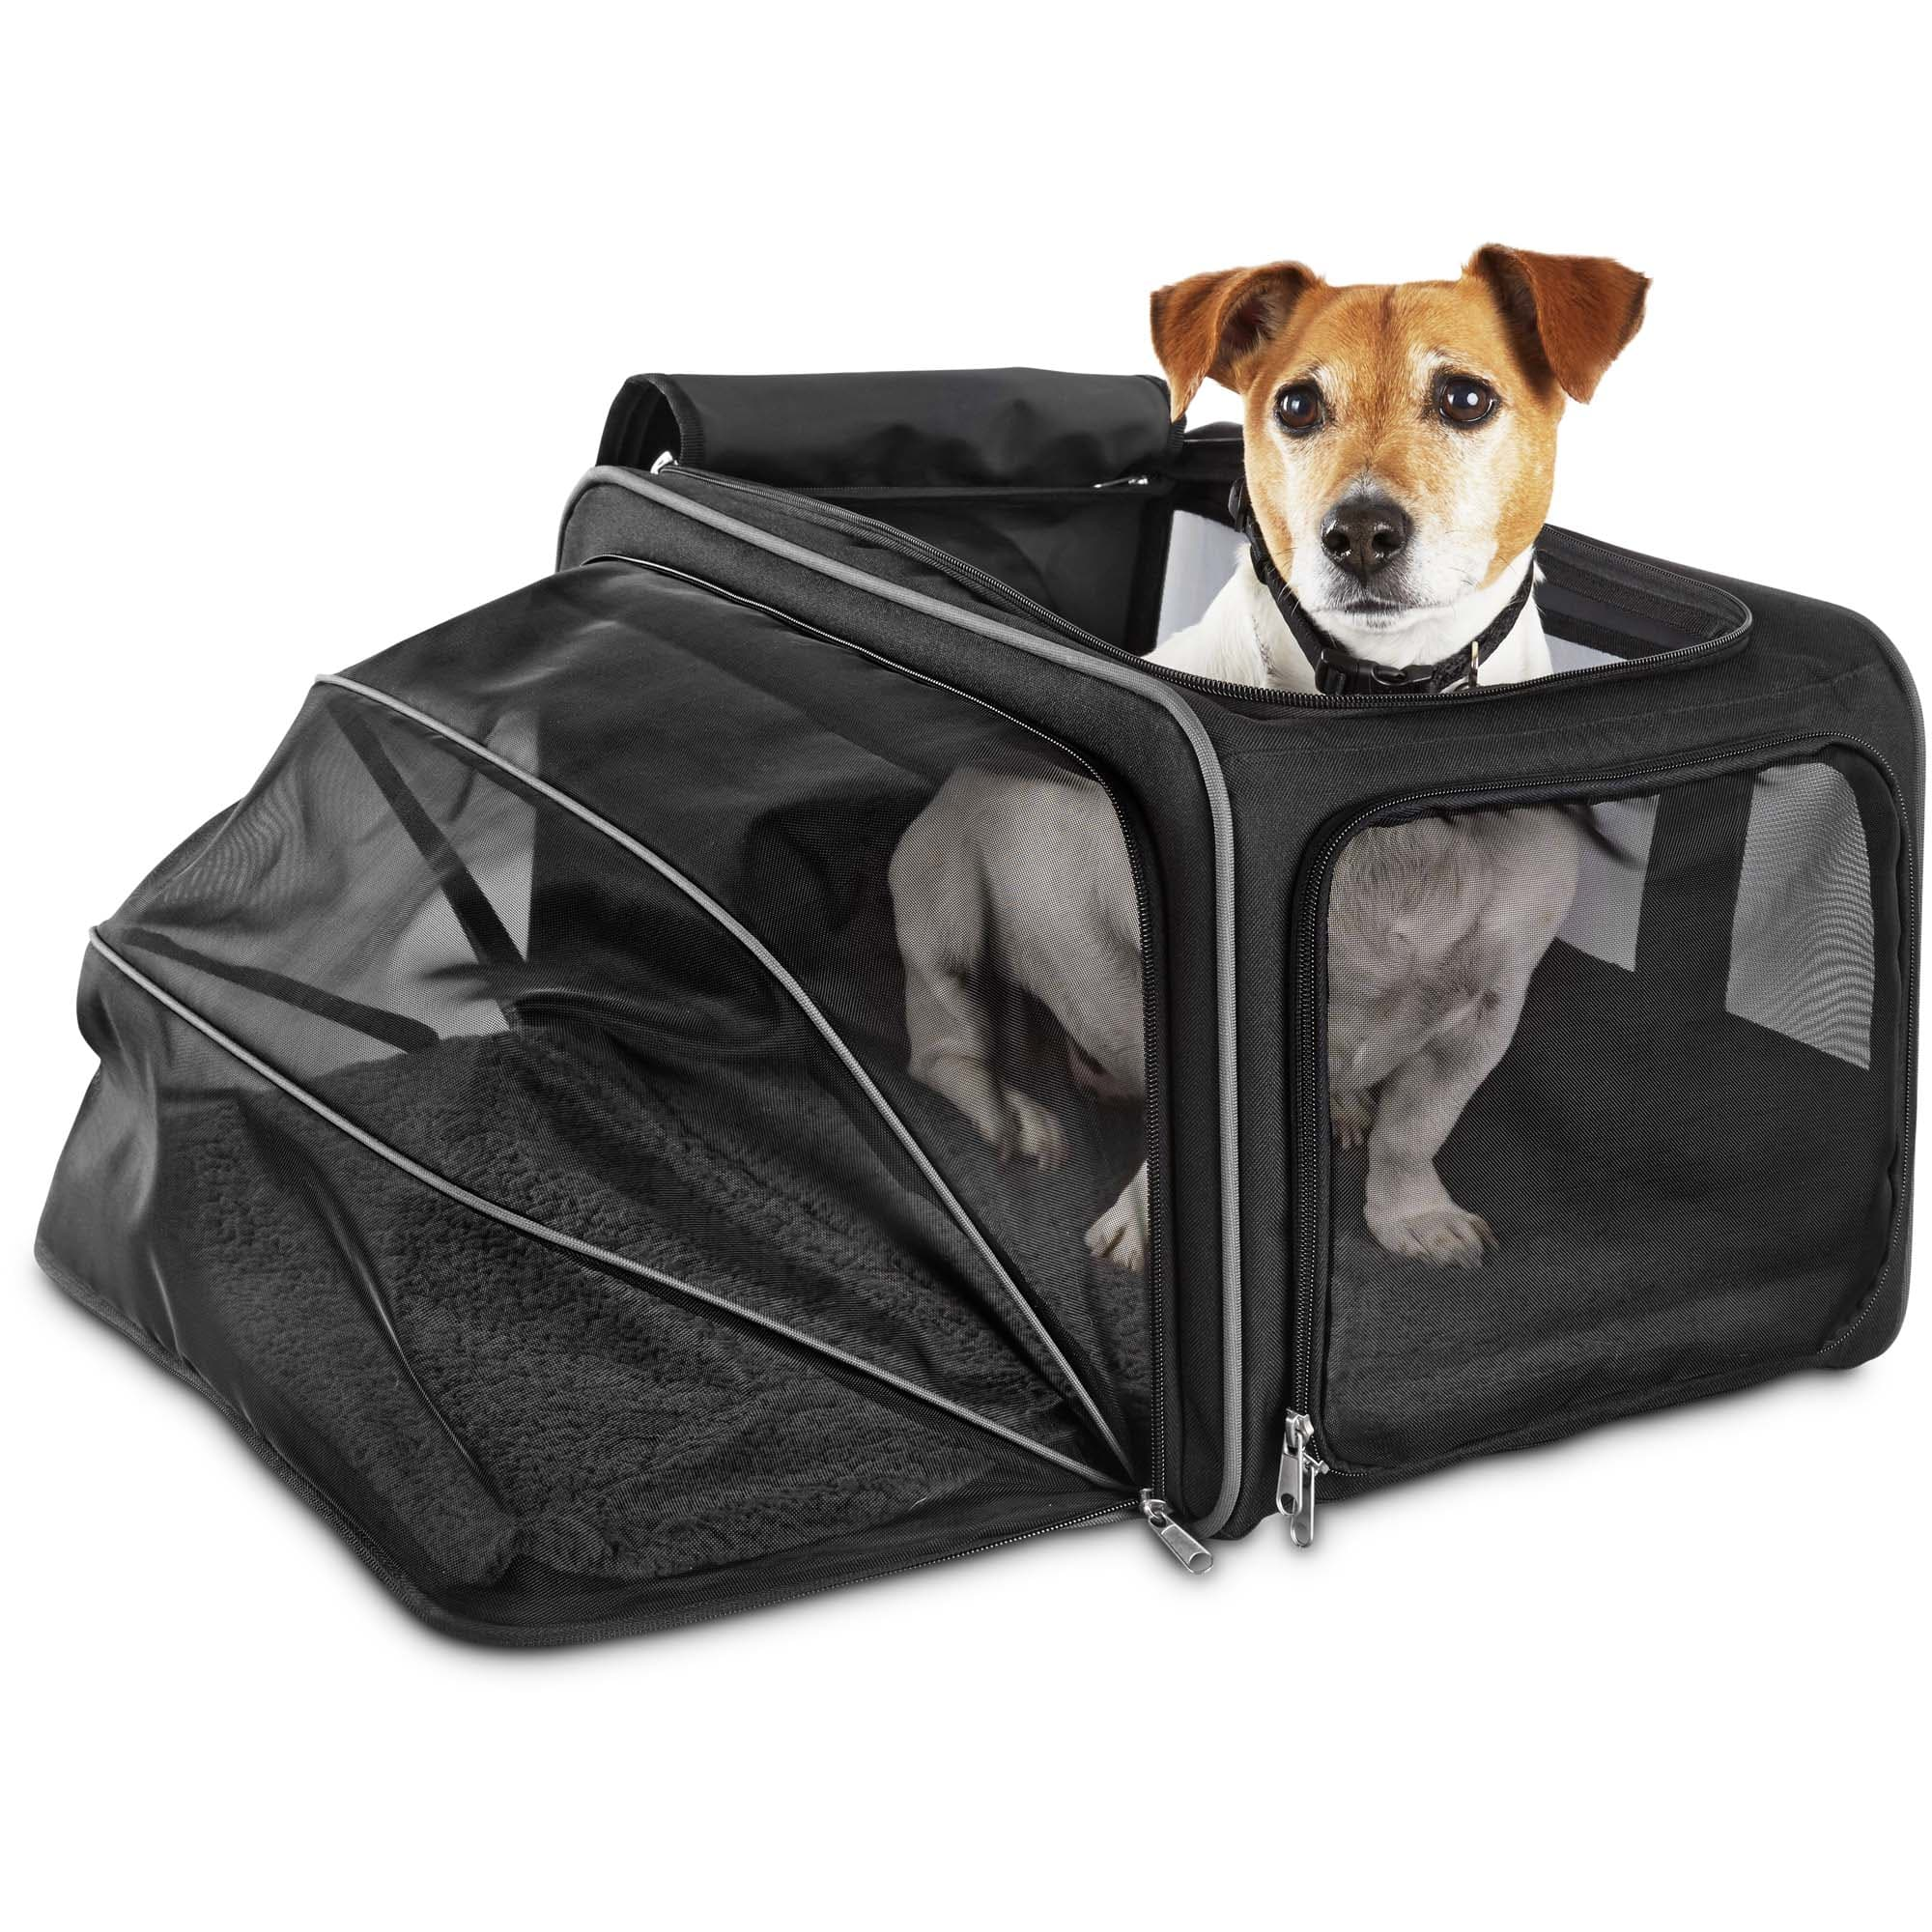 Good2go Expandable Pet Carrier Small Petco